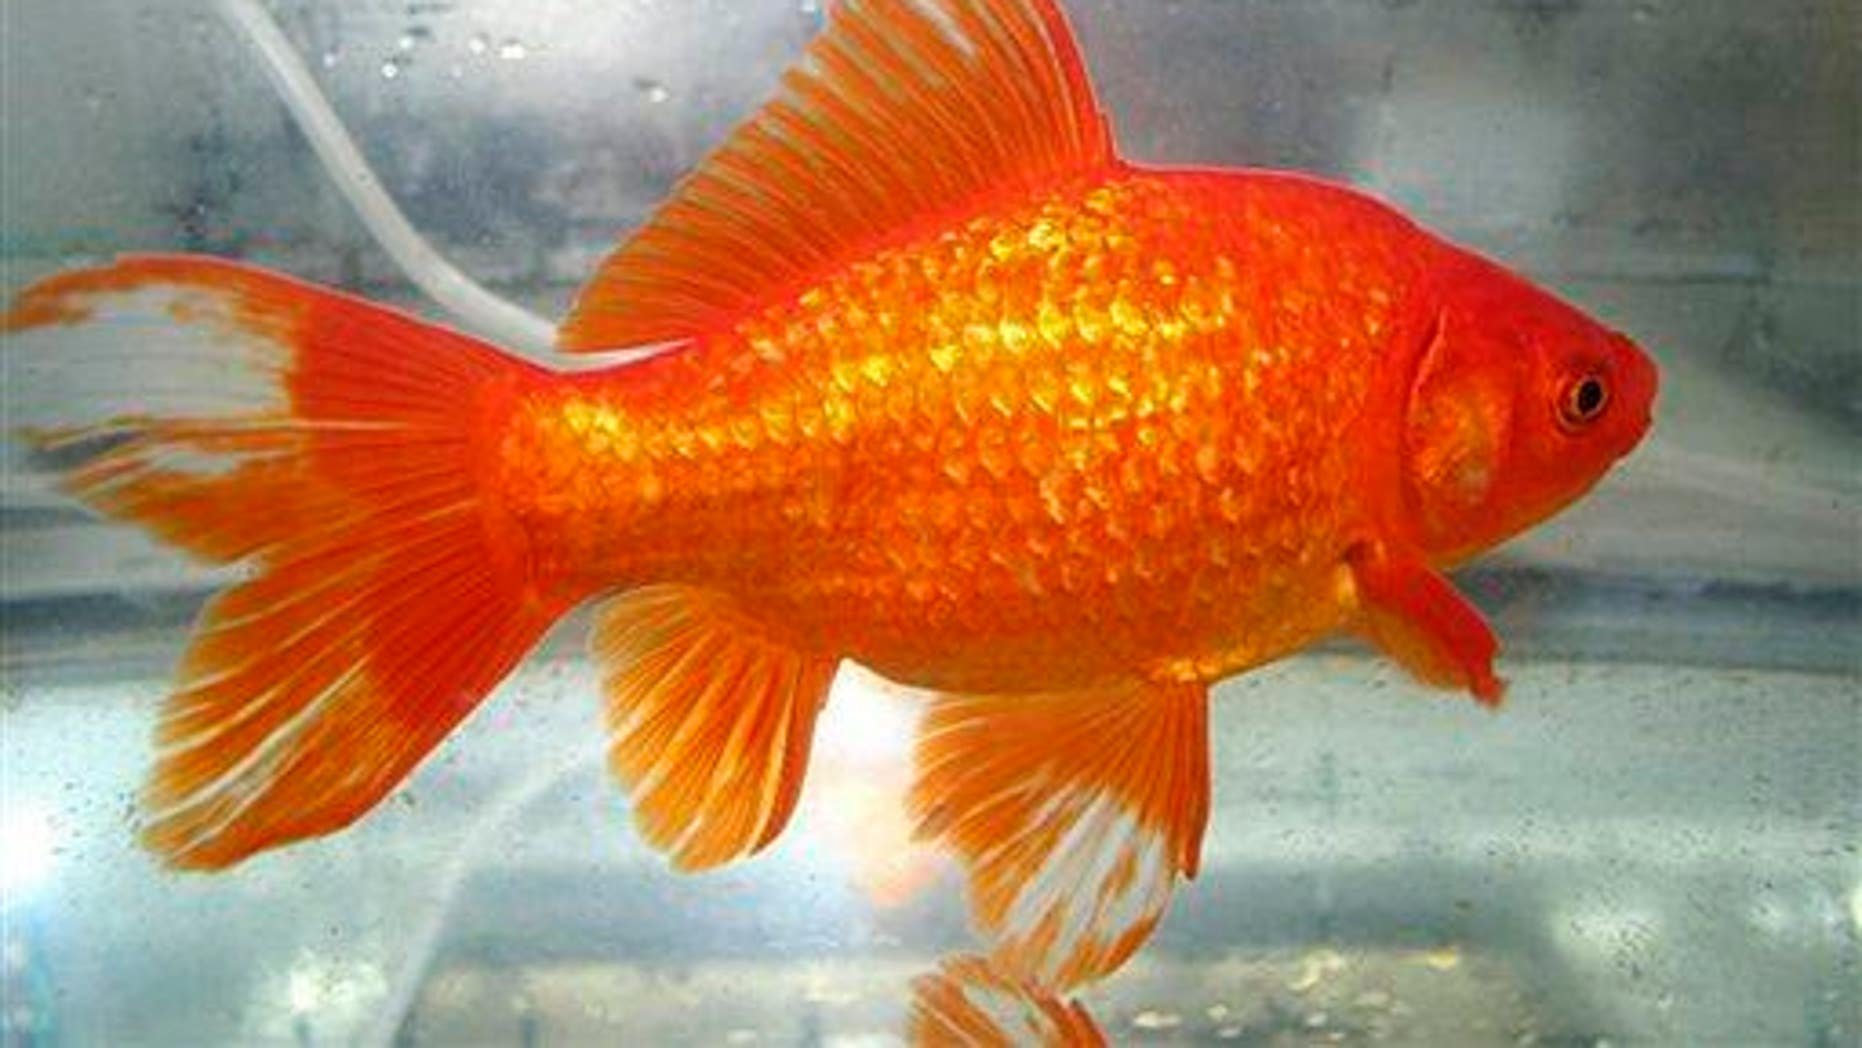 This undated photo shows a common goldfish.